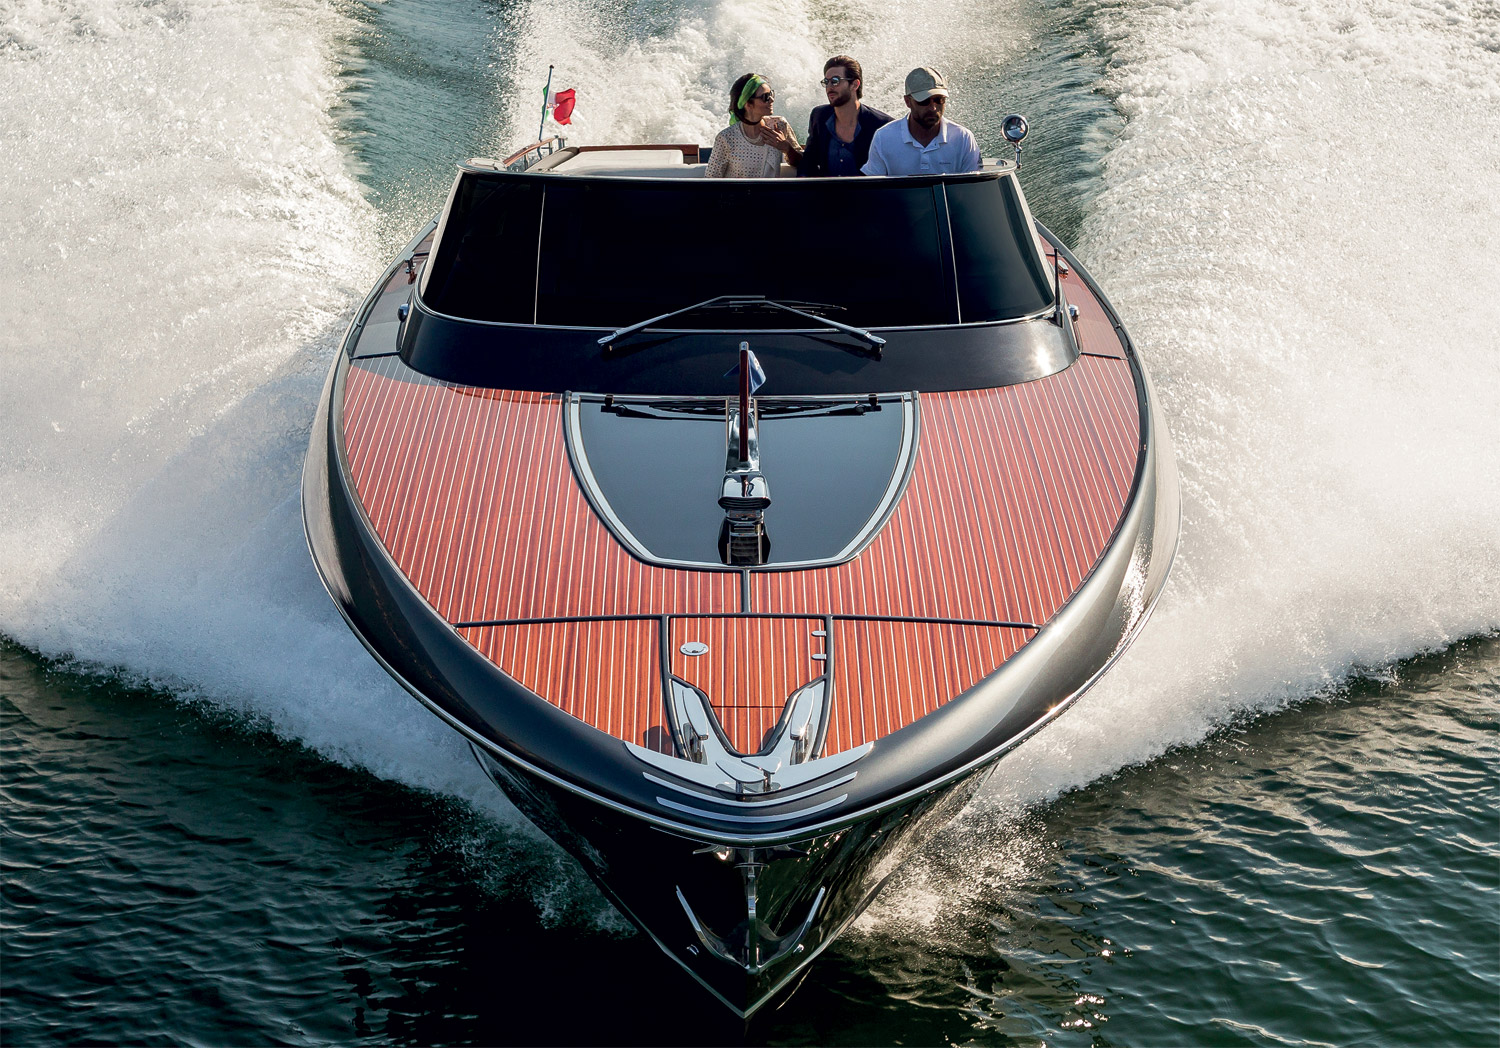 The Must See Picks At The 2018 London Boat Show